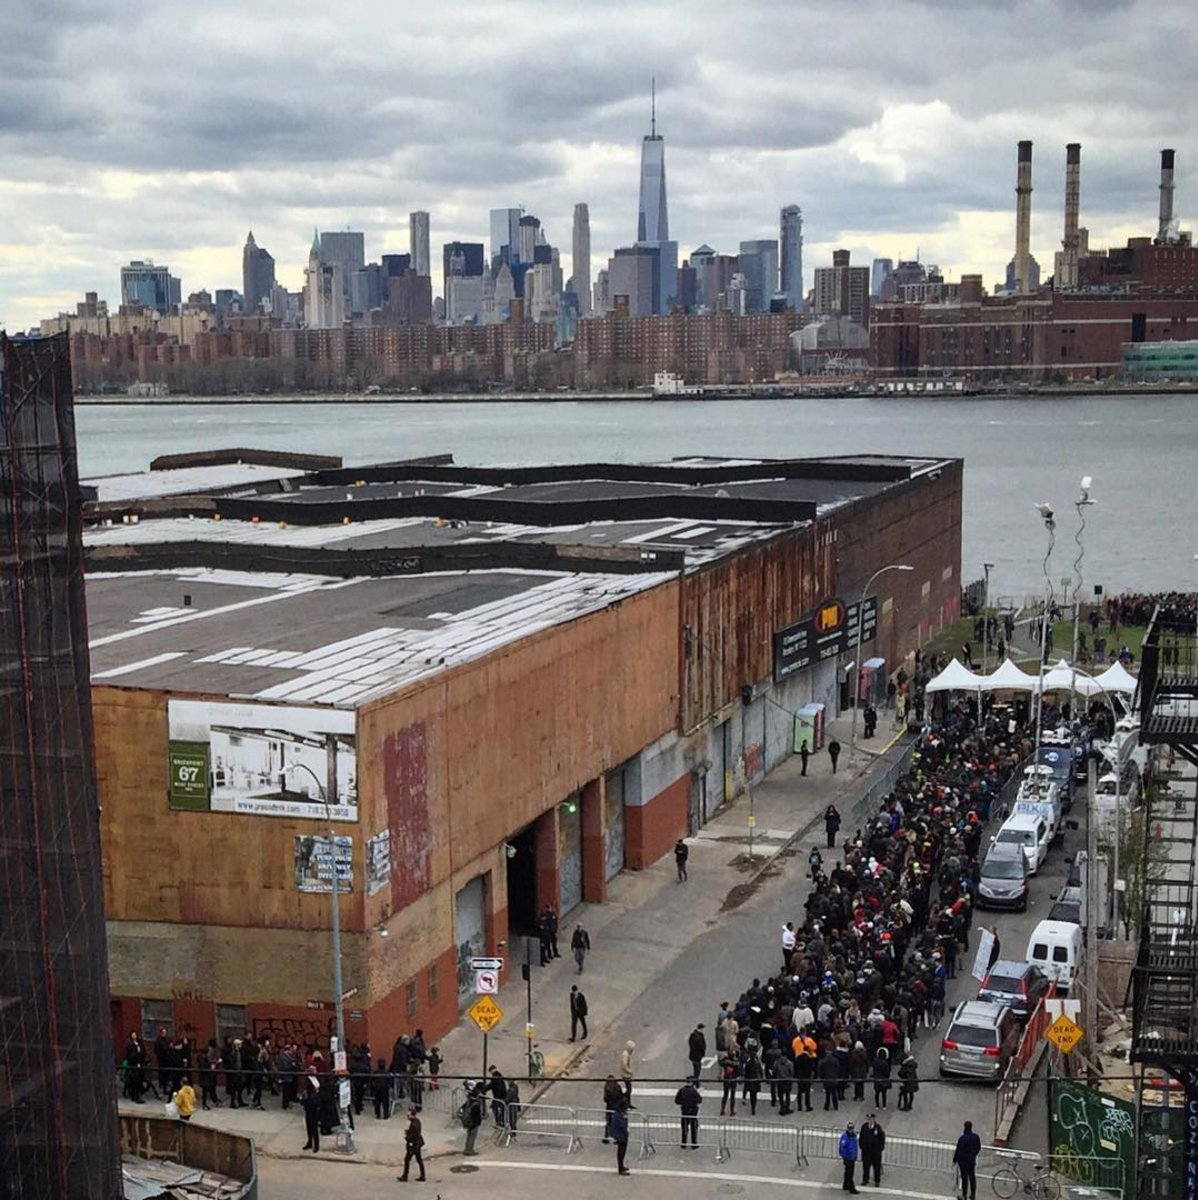 There's a line around the block for the @BernieSanders rally at Transmitter Park in #Greenpoint #brooklyn. https://t.co/XWb9nkMKbl